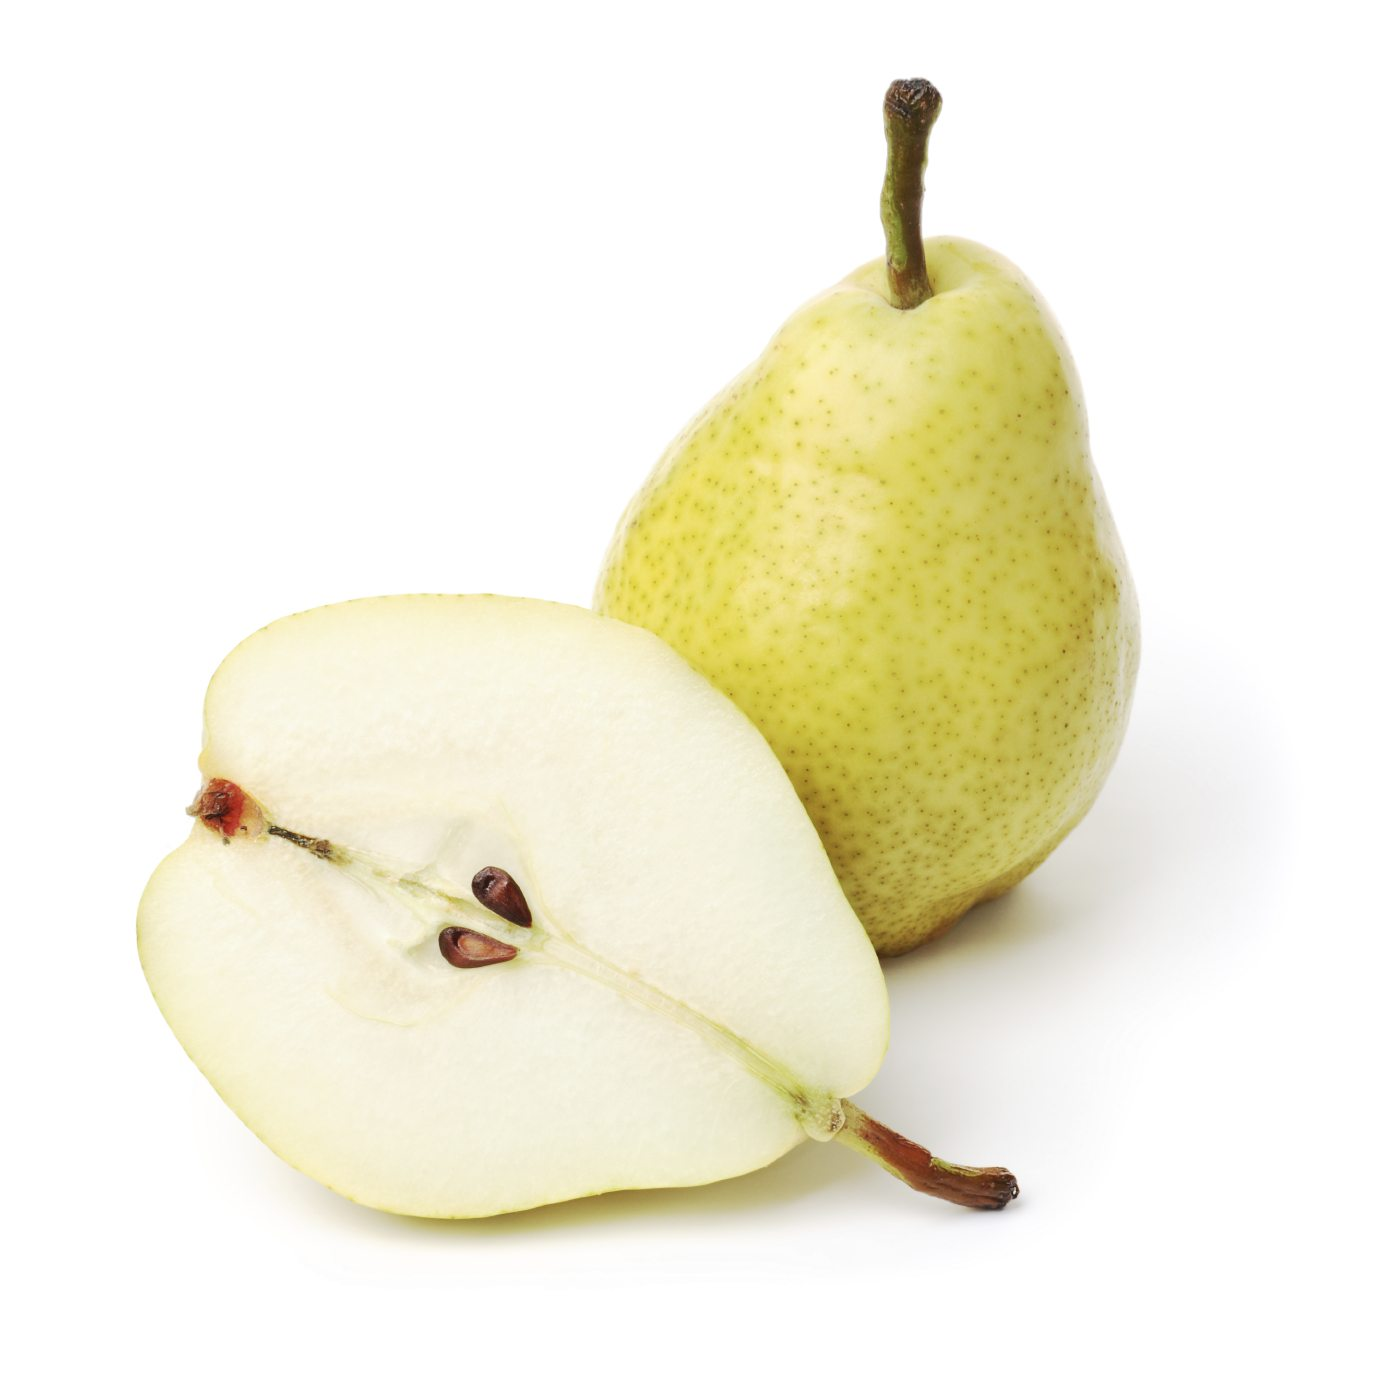 Saving Seeds From Pear When And How To Harvest